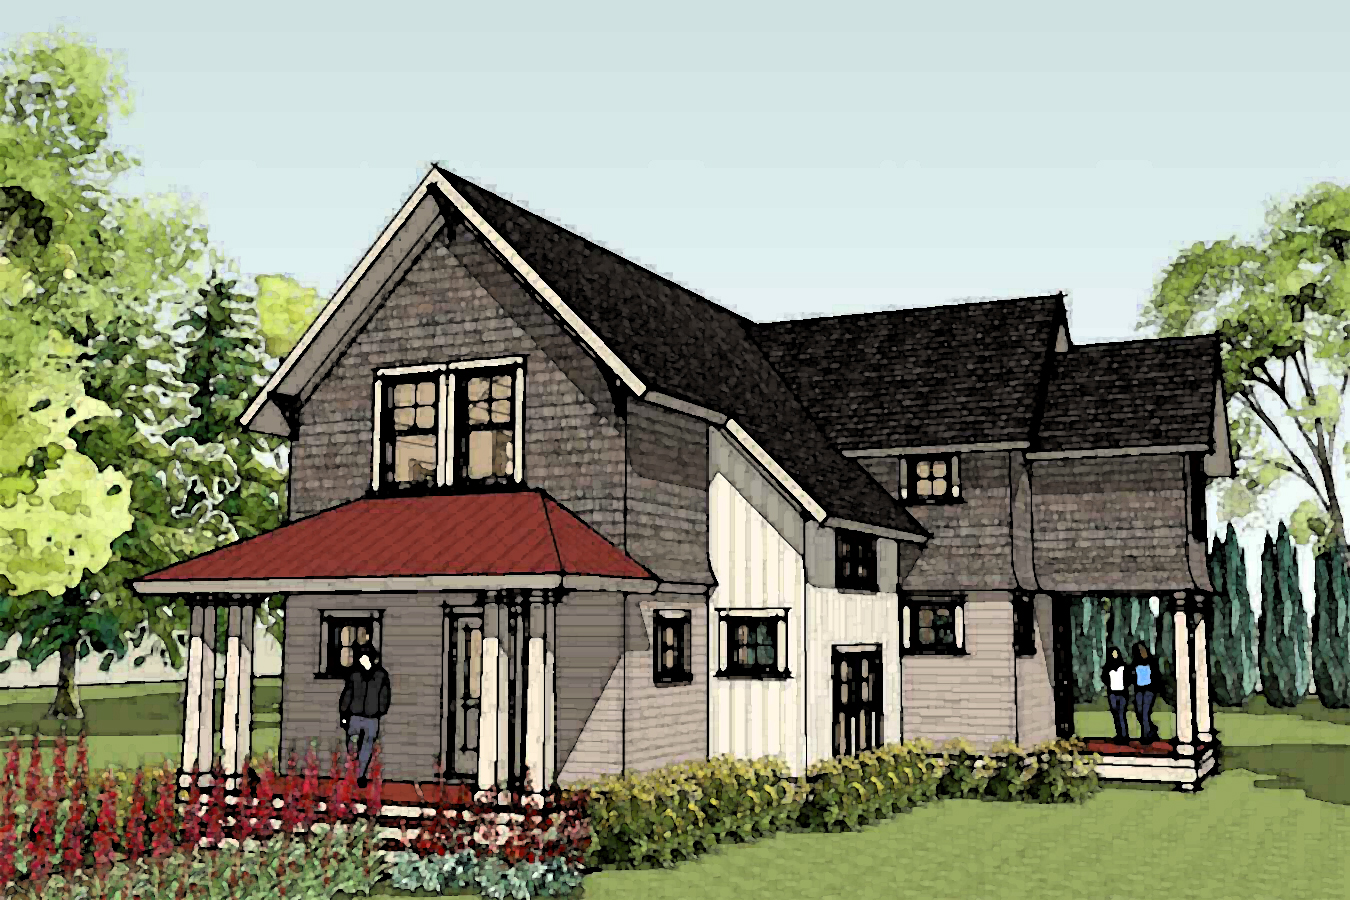 Simply elegant home designs blog new unique small house plan Elegant home design ideas